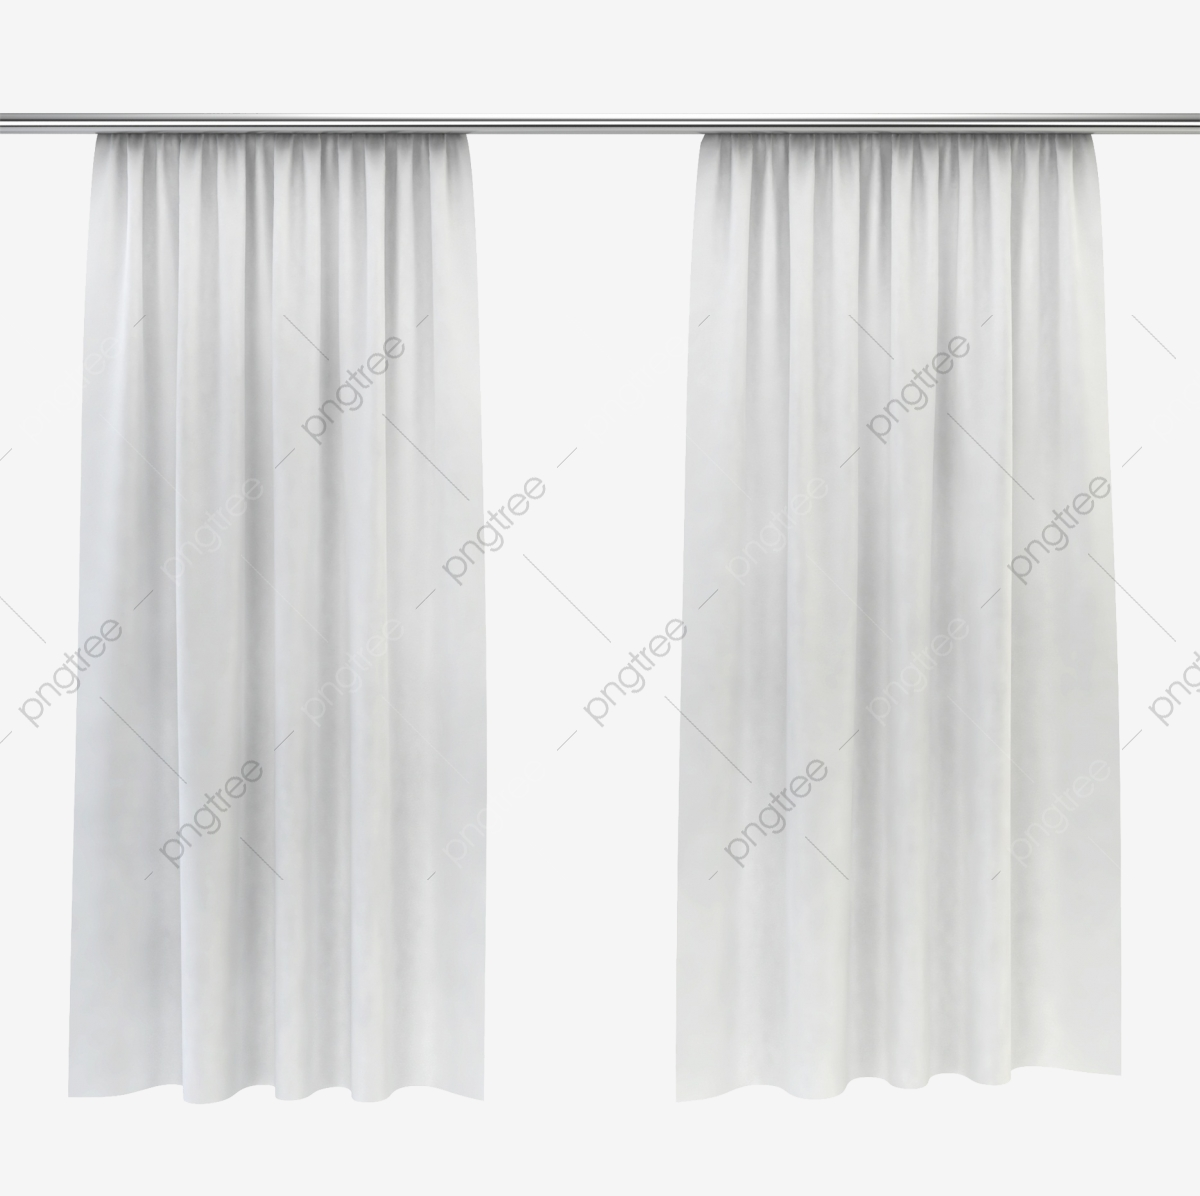 White Elegant Curtain, Material Object, Window Curtains, Silk.